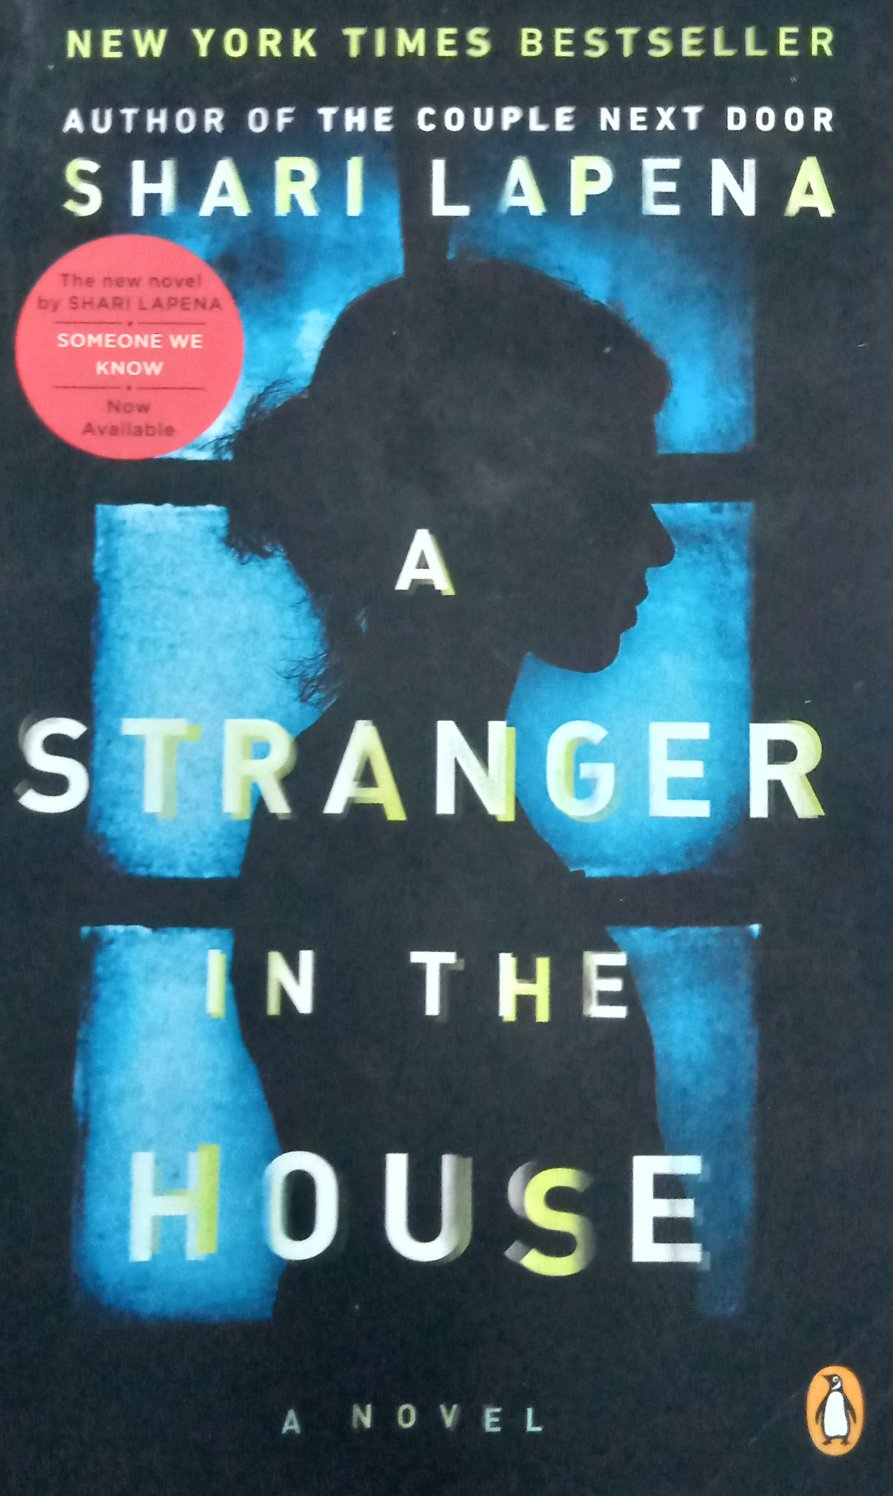 A Stranger in House by Shari Lapena